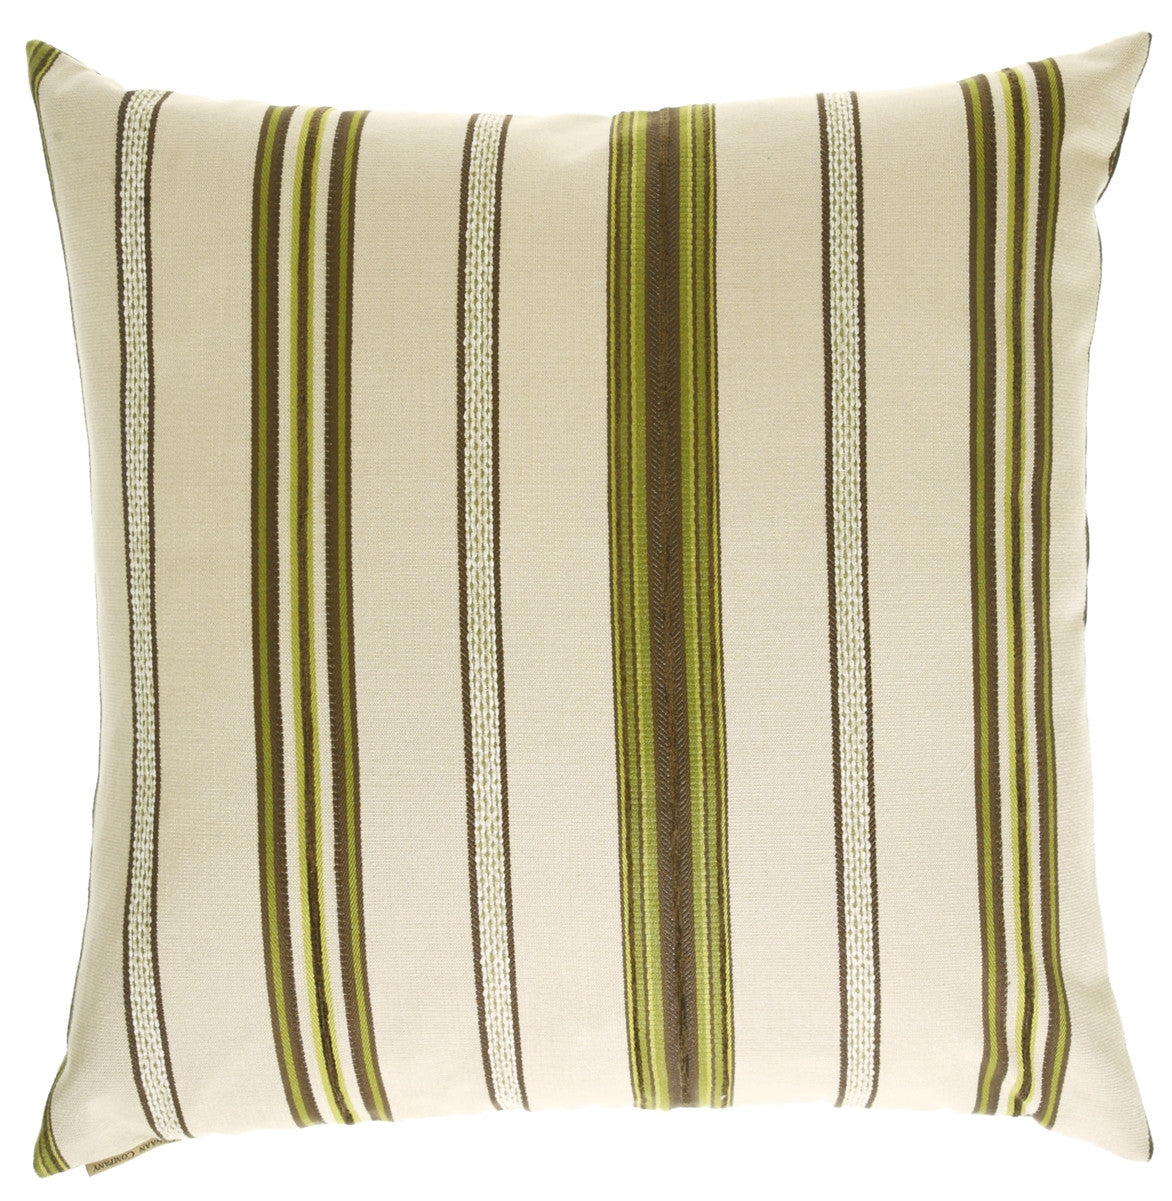 DV Kap Home - Pamlico Toss Pillow